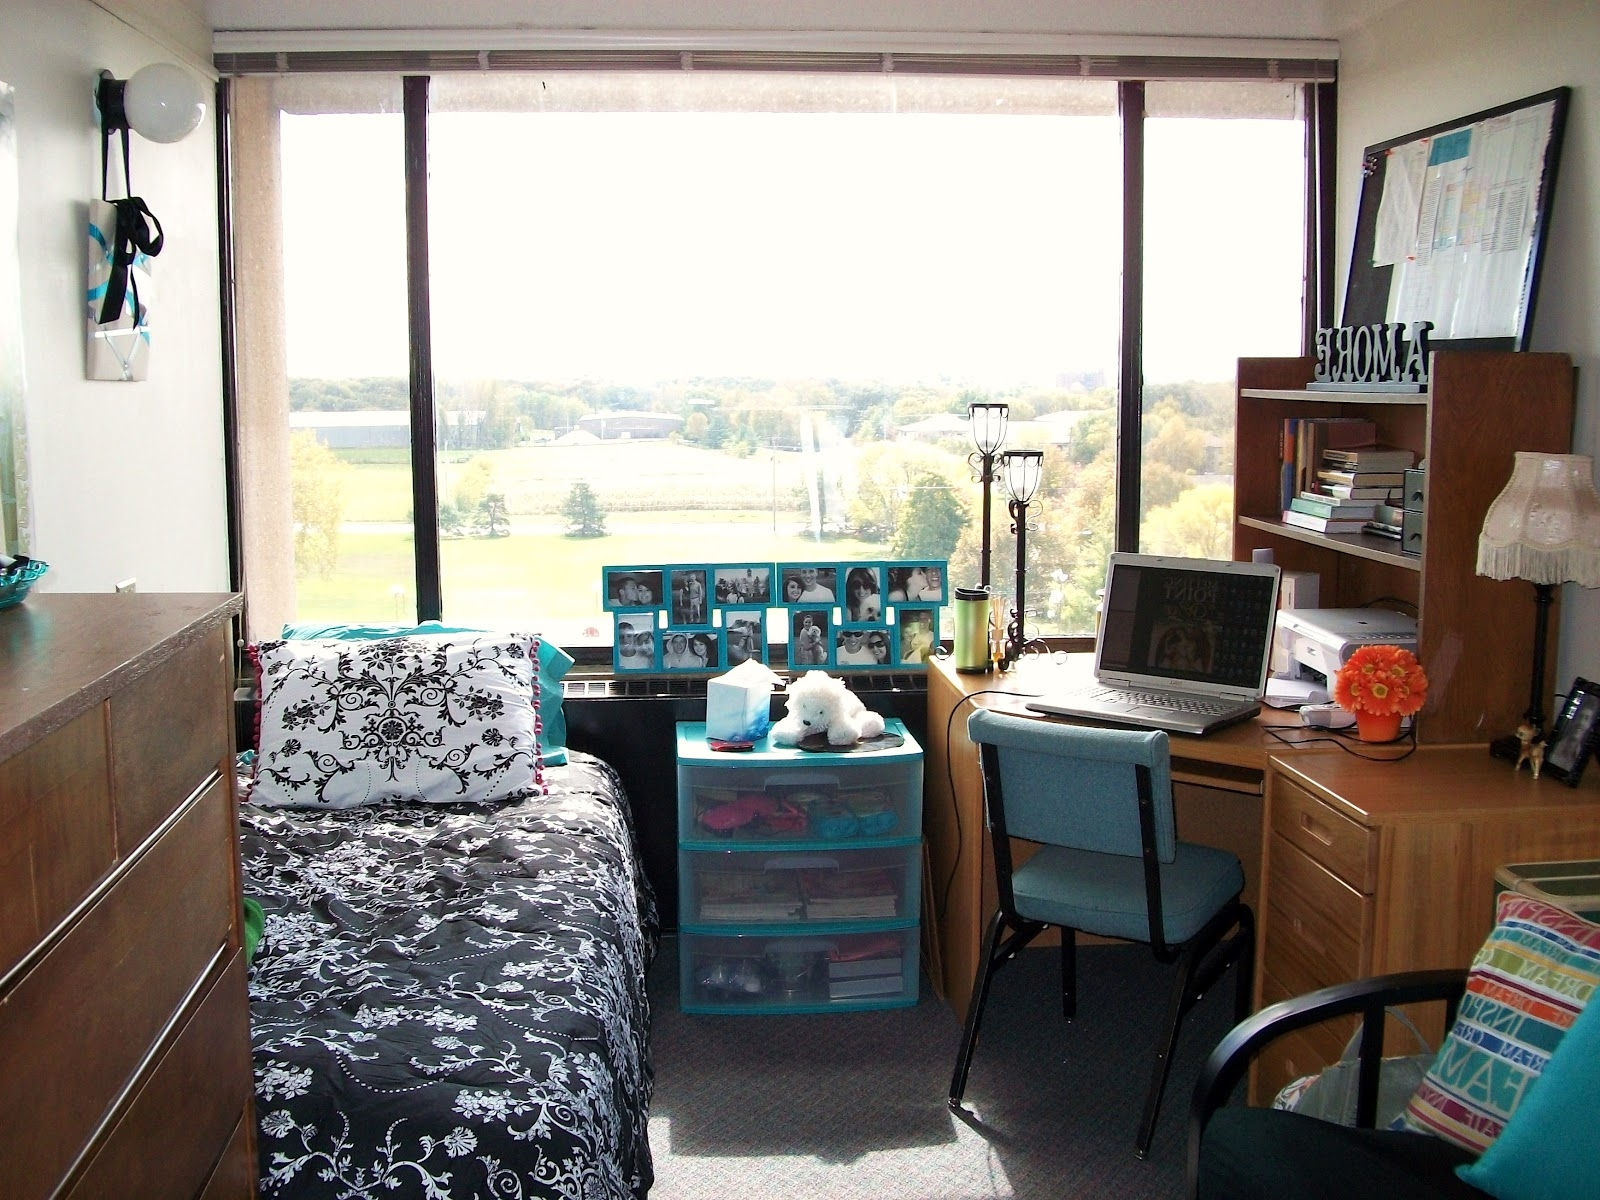 https://midcityeast.com/wp-content/uploads/2016/07/Cool-Boys-Dorm-Room-Ideas-with-Wooden-Desk-and-Single-Bed-Next-to-Ample-Window.jpg